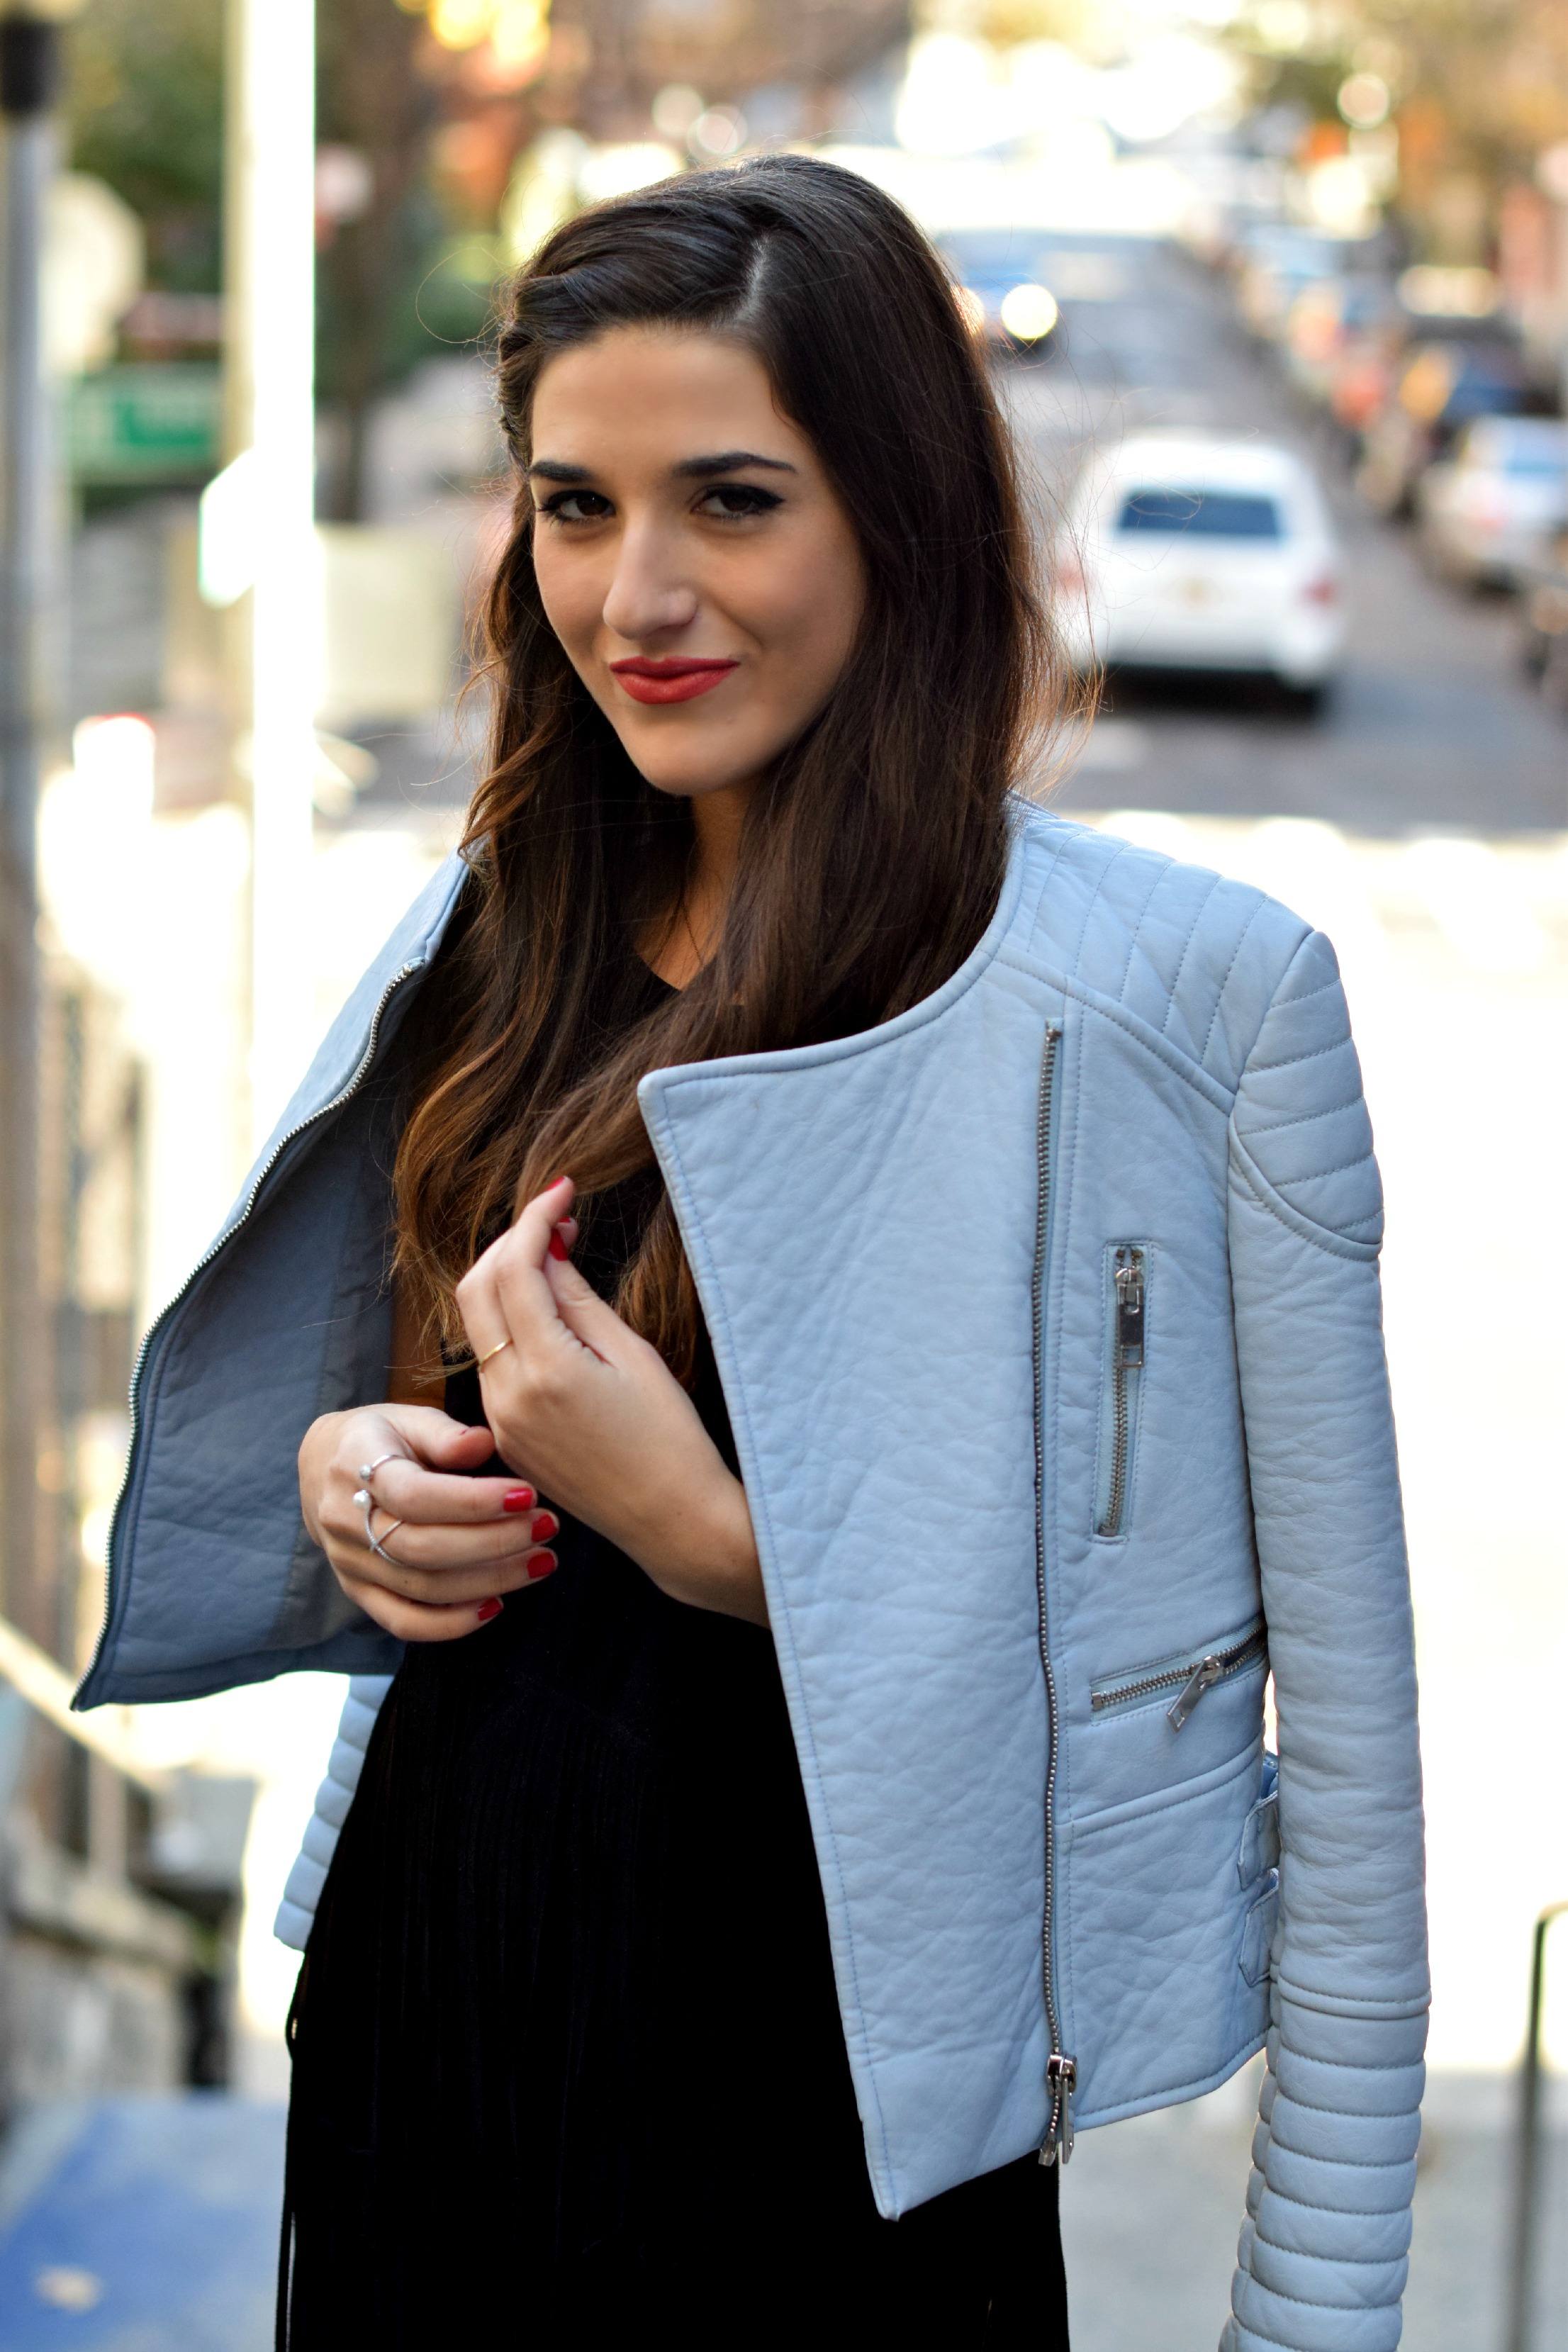 Black Fringe Dress Trèscool Louboutins & Love Fashion Blog Esther Santer NYC Street Style Blogger Baby Blue Leather Jacket Zara Hair Girl Model Photoshoot Booties Nordstrom Outfit OOTD Pretty Red Nail Polish Winter Fall Look  Trendy Shoes Shop Inspo.jpg